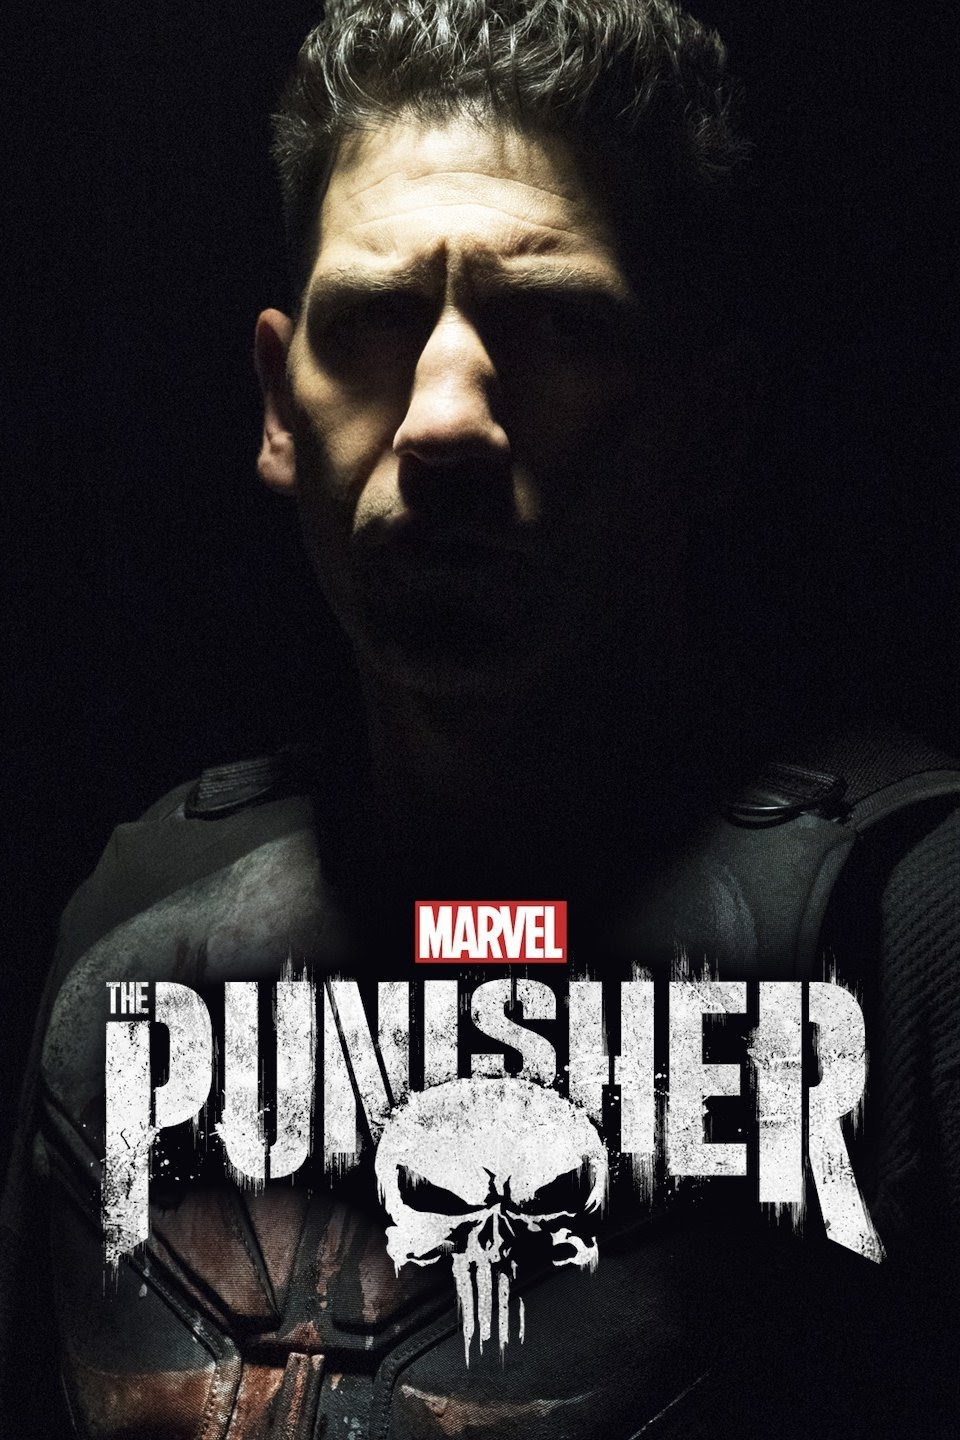 Marvel's The Punisher S01 E09 Cut